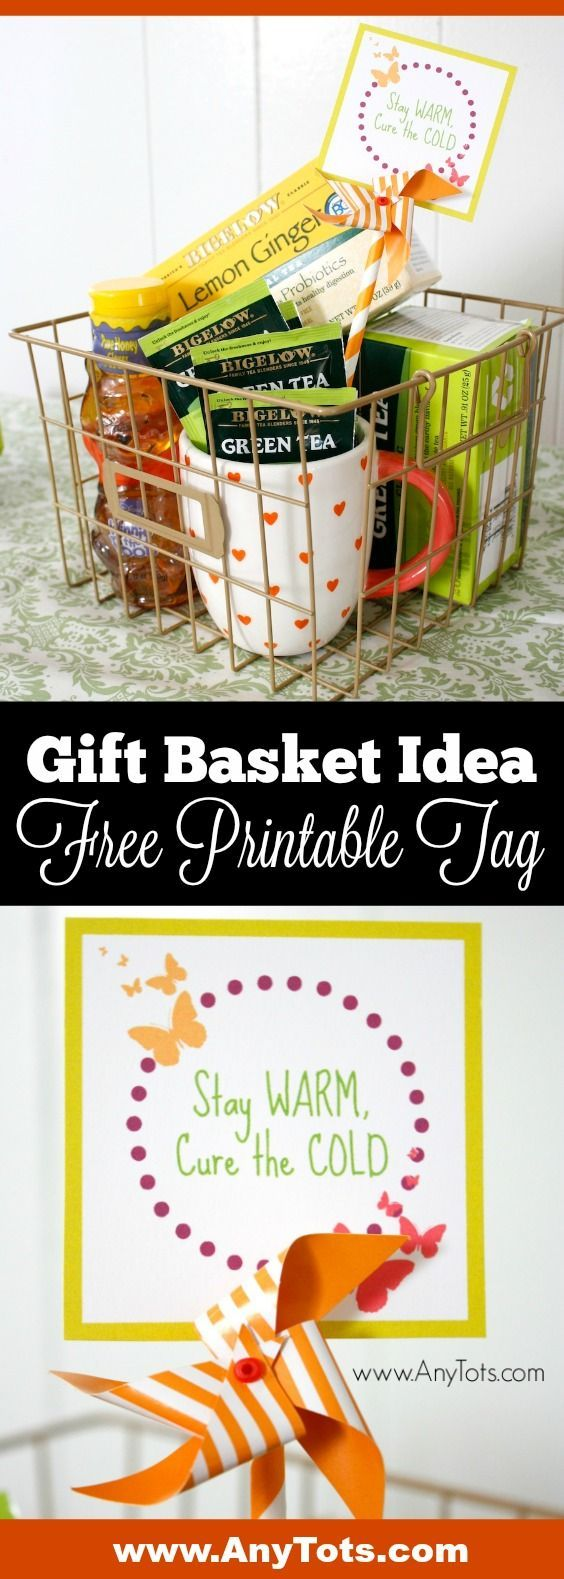 Gift Basket Idea. This is a Tea Gift Basket Idea that comes with a Free Printable Gift Basket Tag. Tutorial on the blog, www.anytots.com